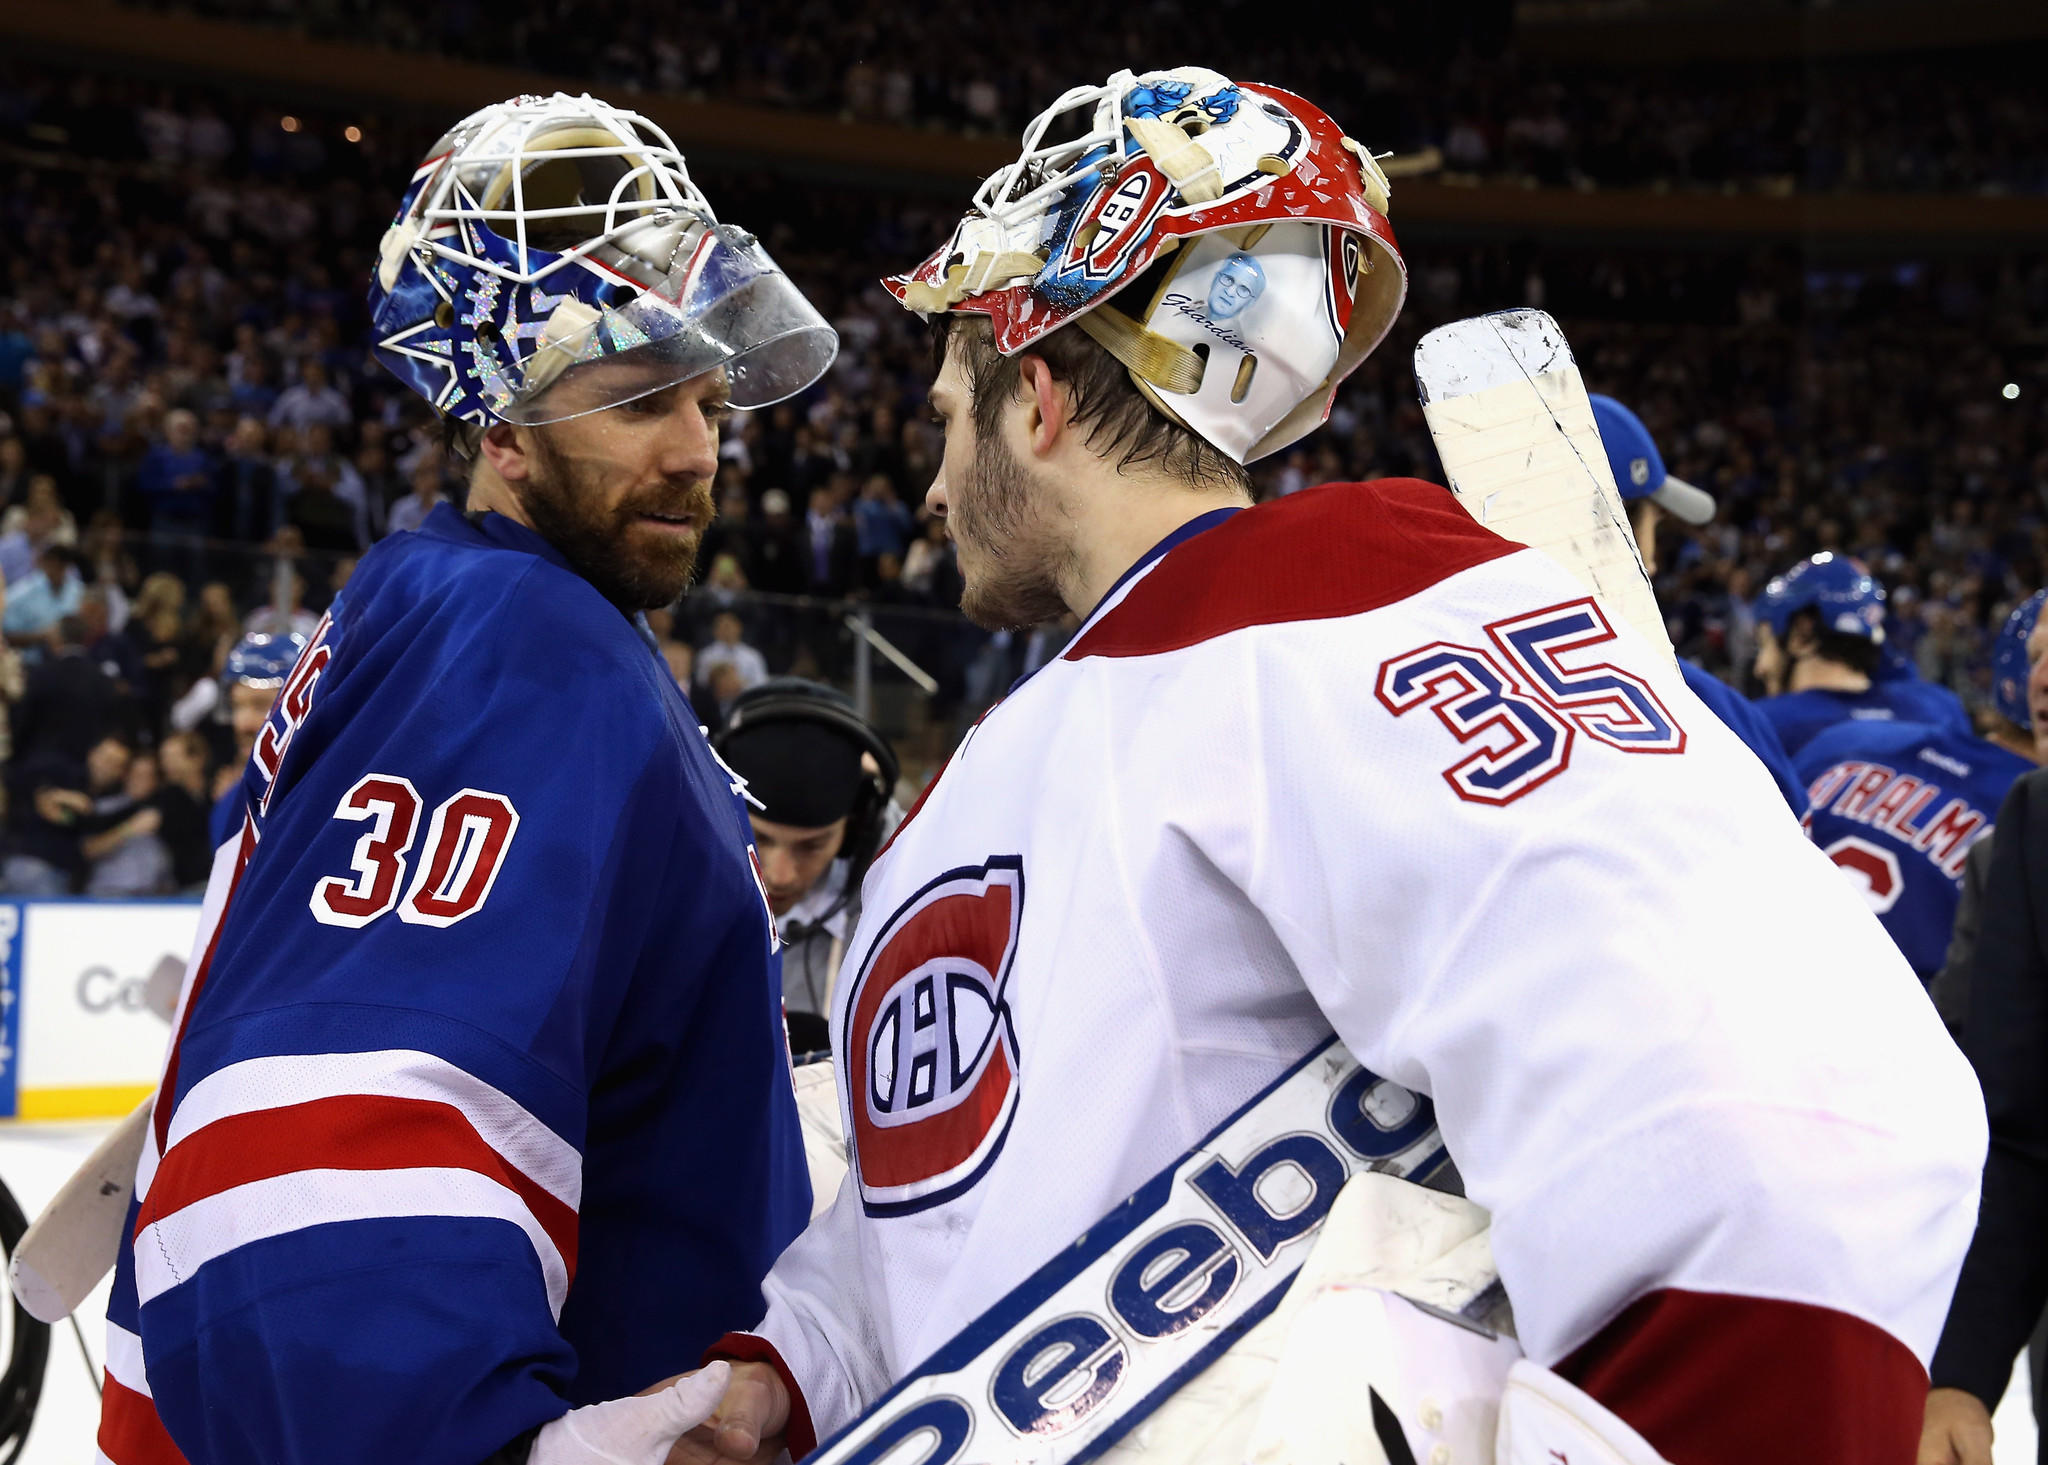 Rangers goalie Henrik Lundqvist, left, shakes hands with Canadiens goalie Dustin Tokarski after shutting out Montreal 1-0 in Game 6 to send New York to the Stanley Cup finals.